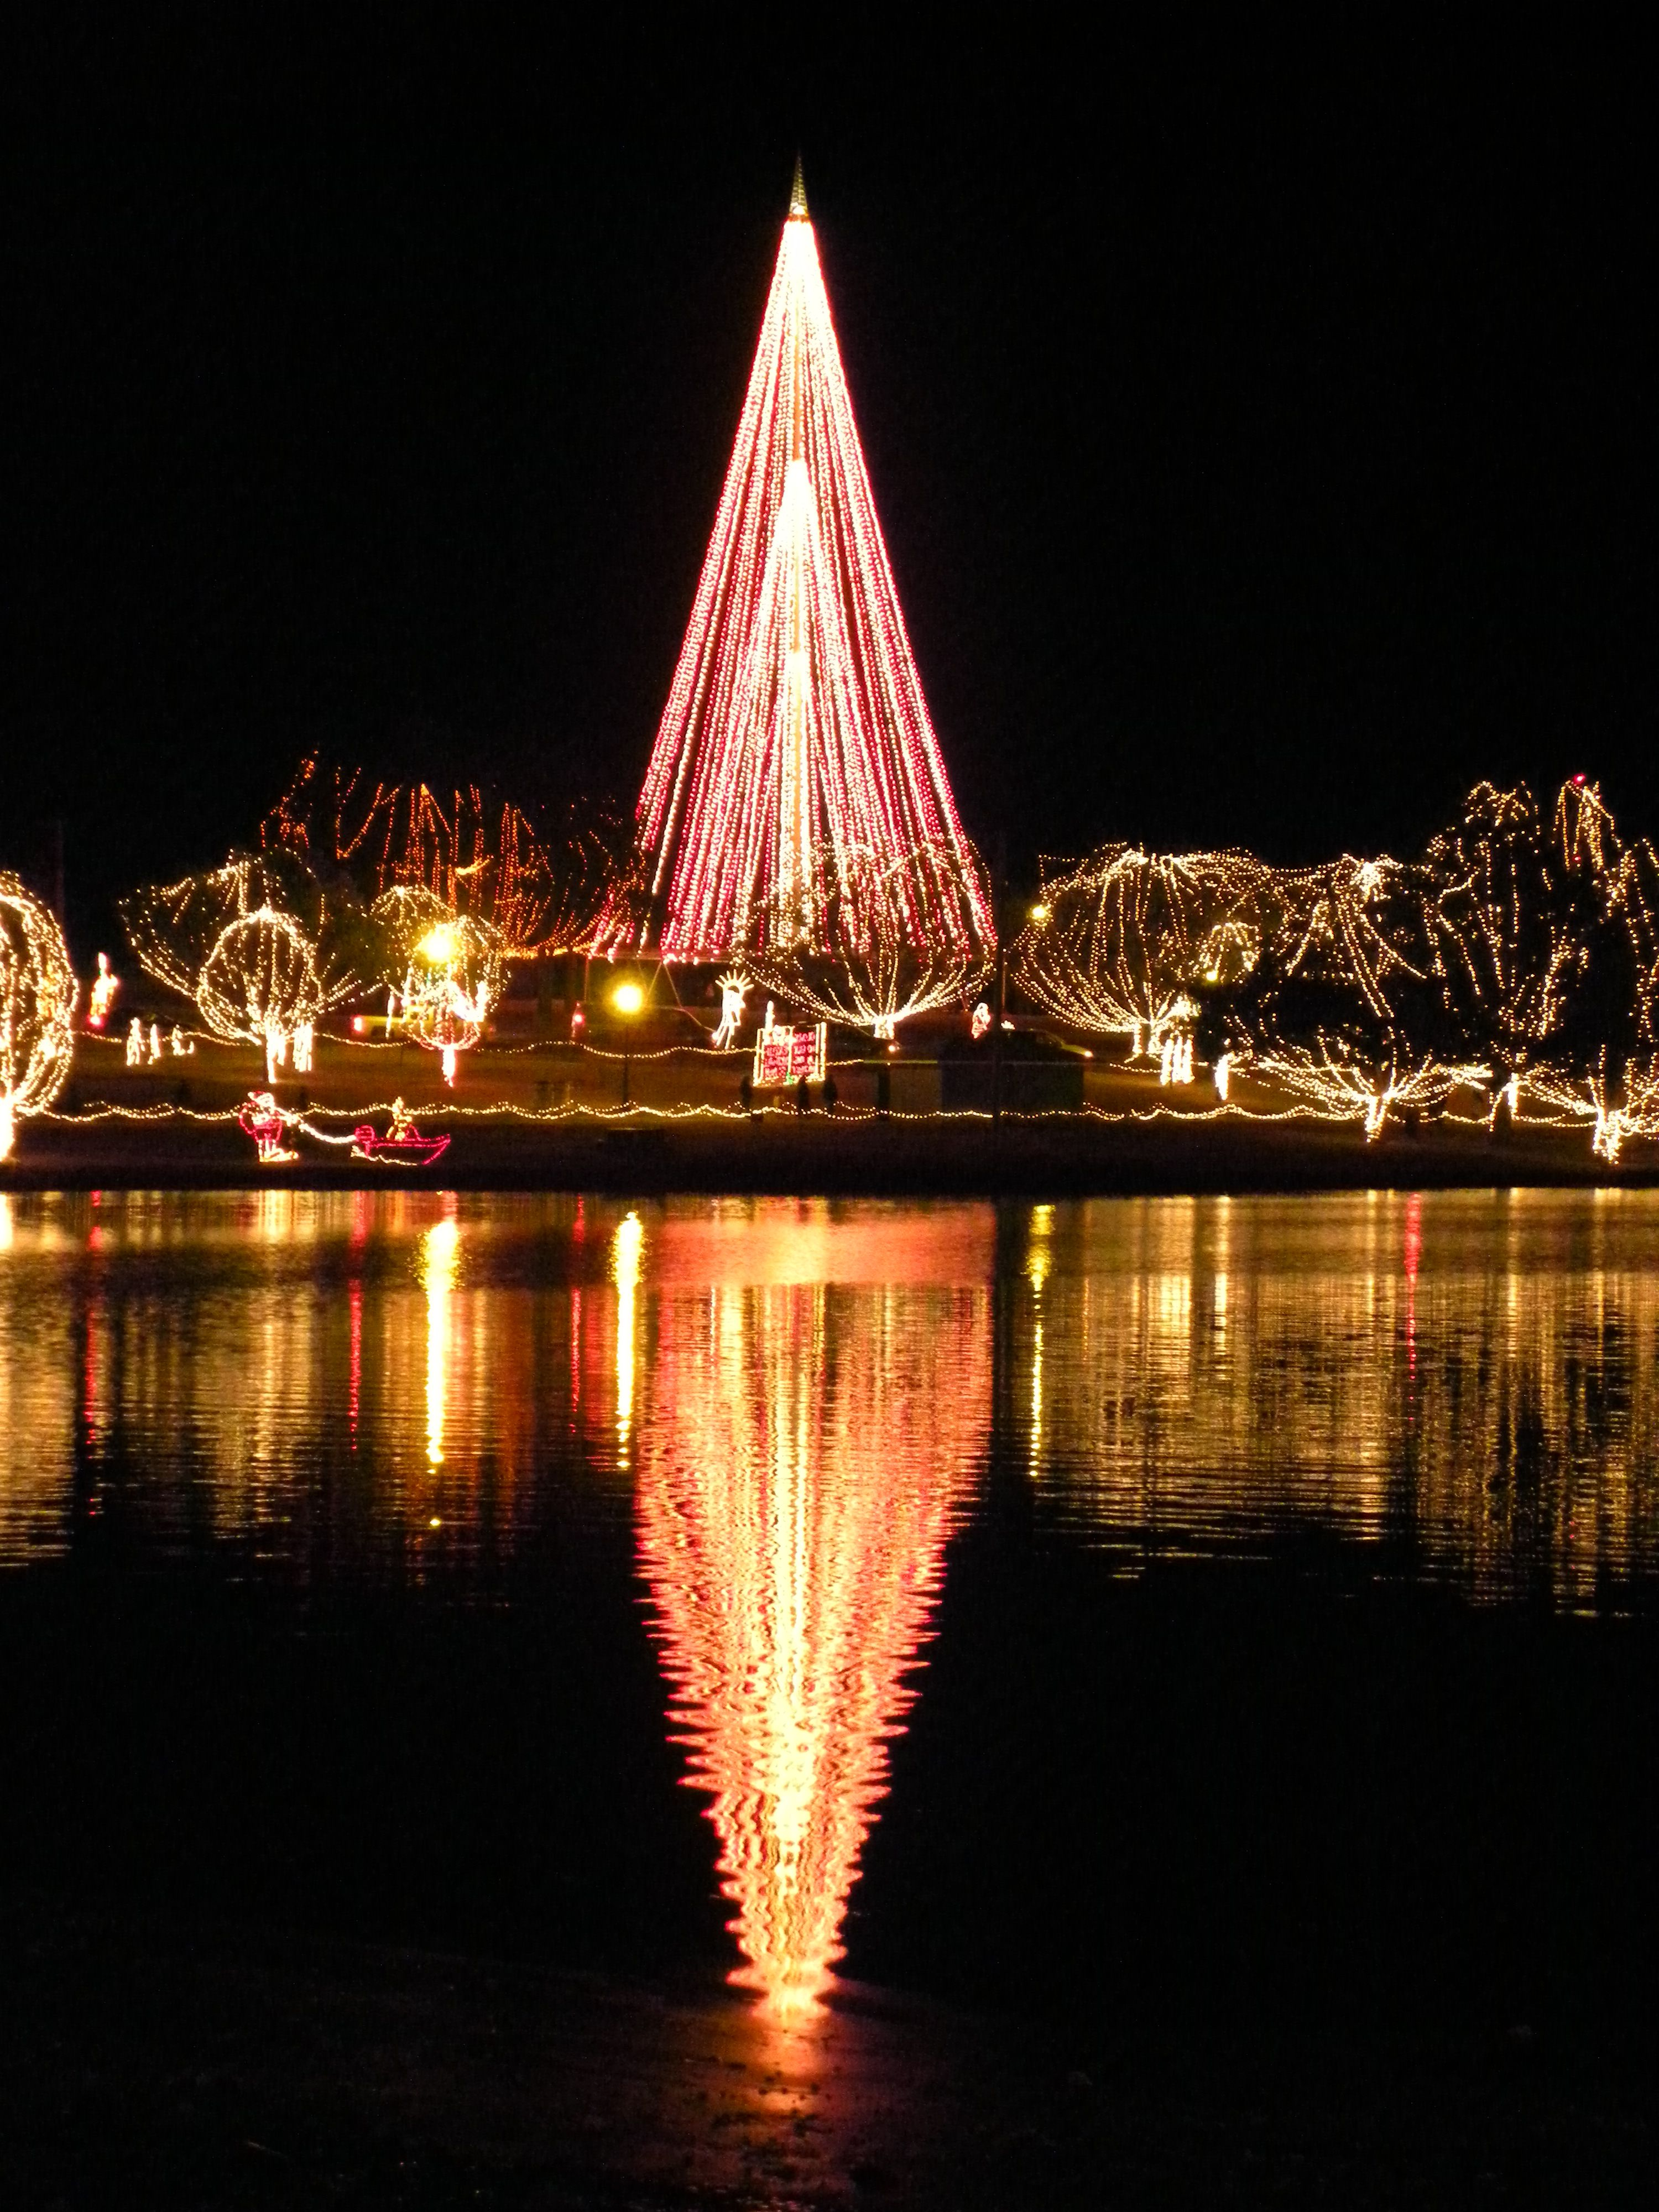 Night lights upper canada village - 17 Best Images About Festival Of Lights On Pinterest Disney Travel The Festival And Berlin